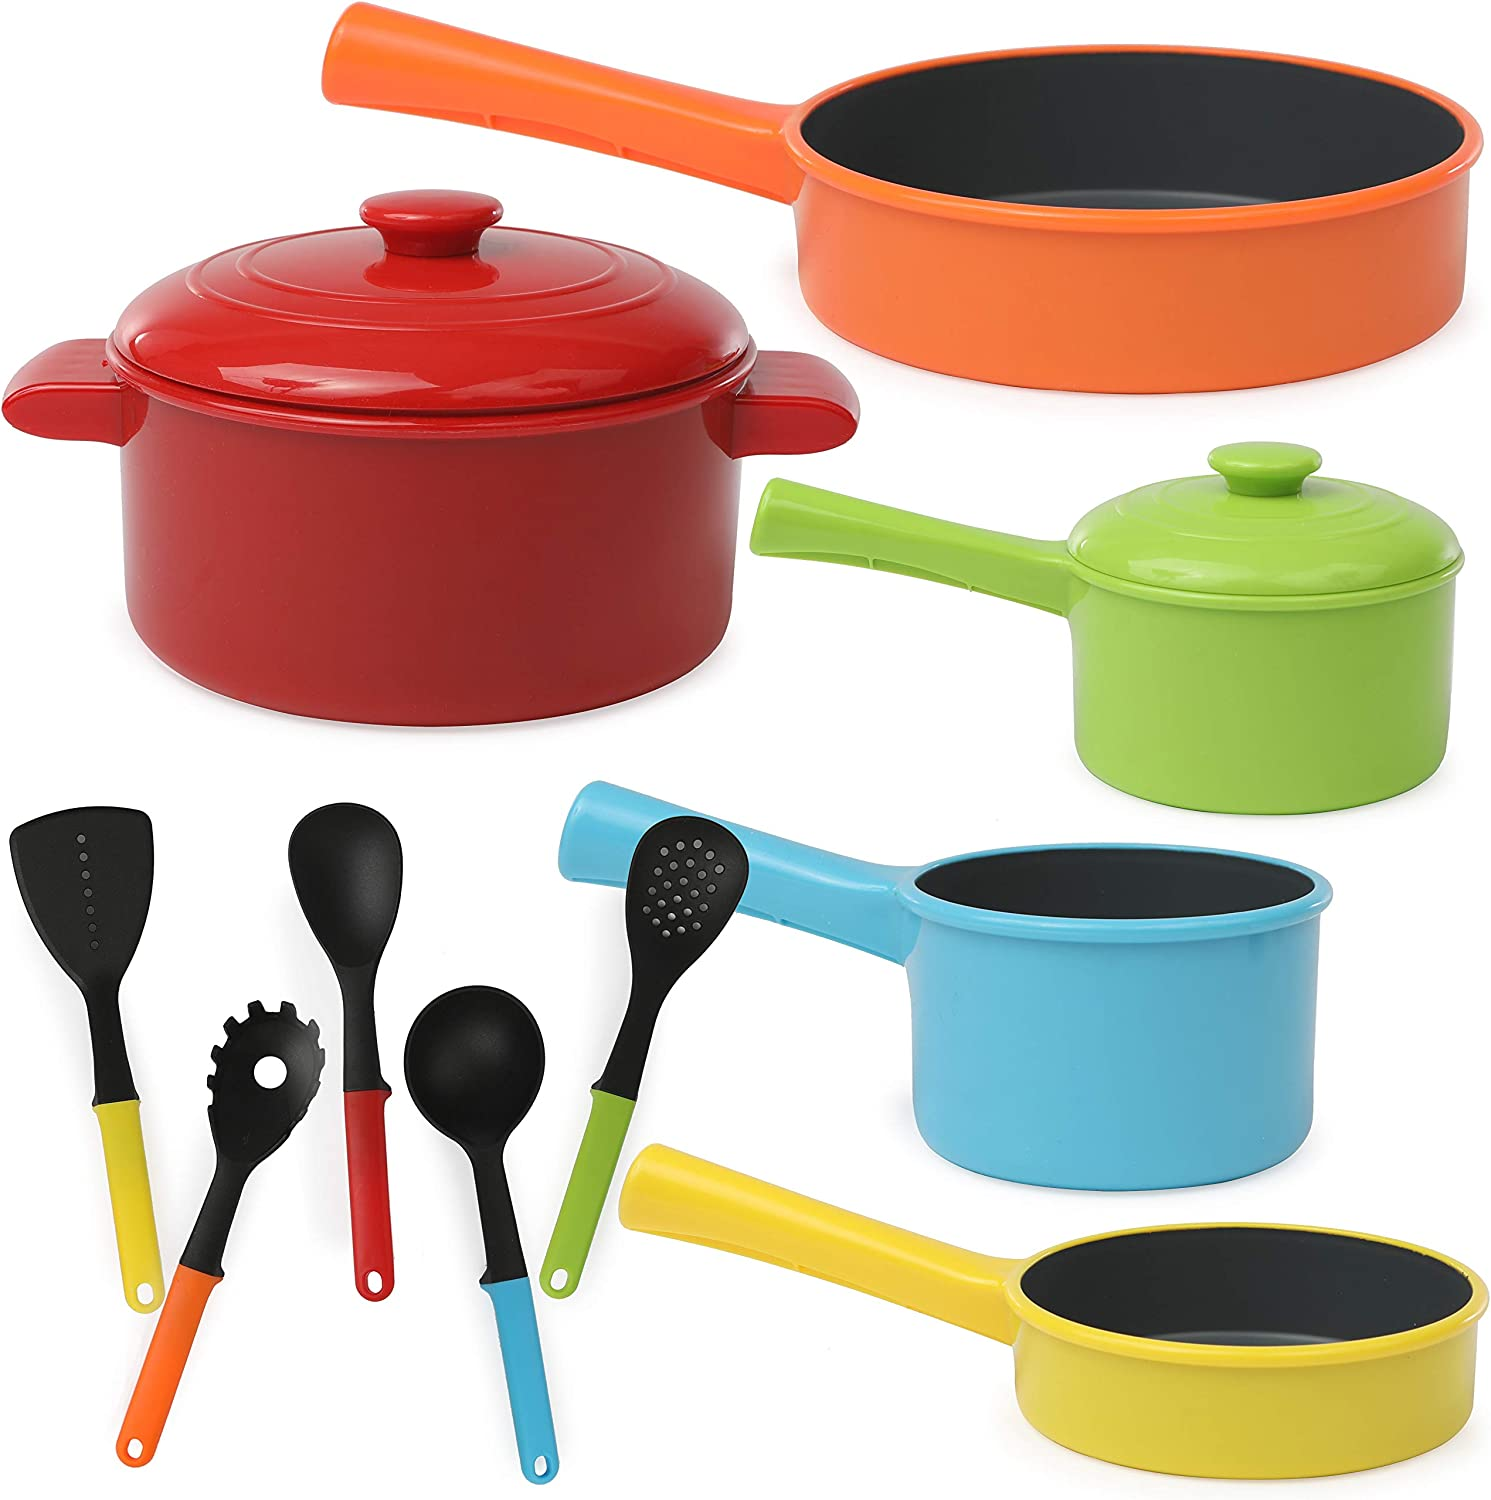 IQ Toys Play Pots and Pans Toys for Kids - Pretend Play Kitchen Cookware Playset, Brightly Colored Set, 12 Pieces